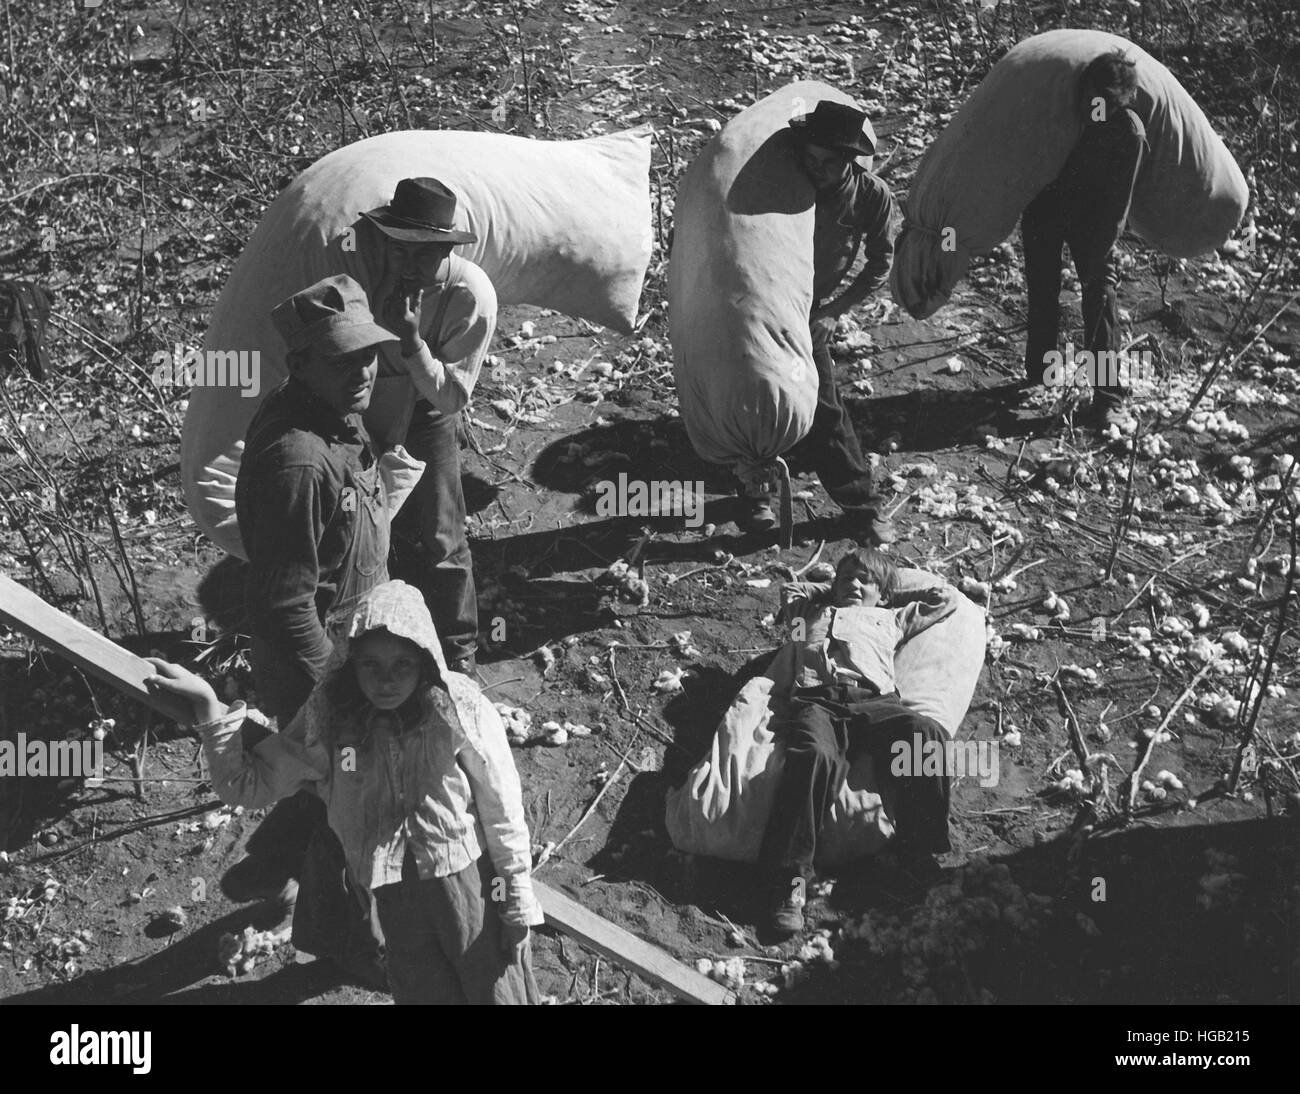 Family labor at cotton picking time on a farm near Coolidge, Arizona, 1940. - Stock Image